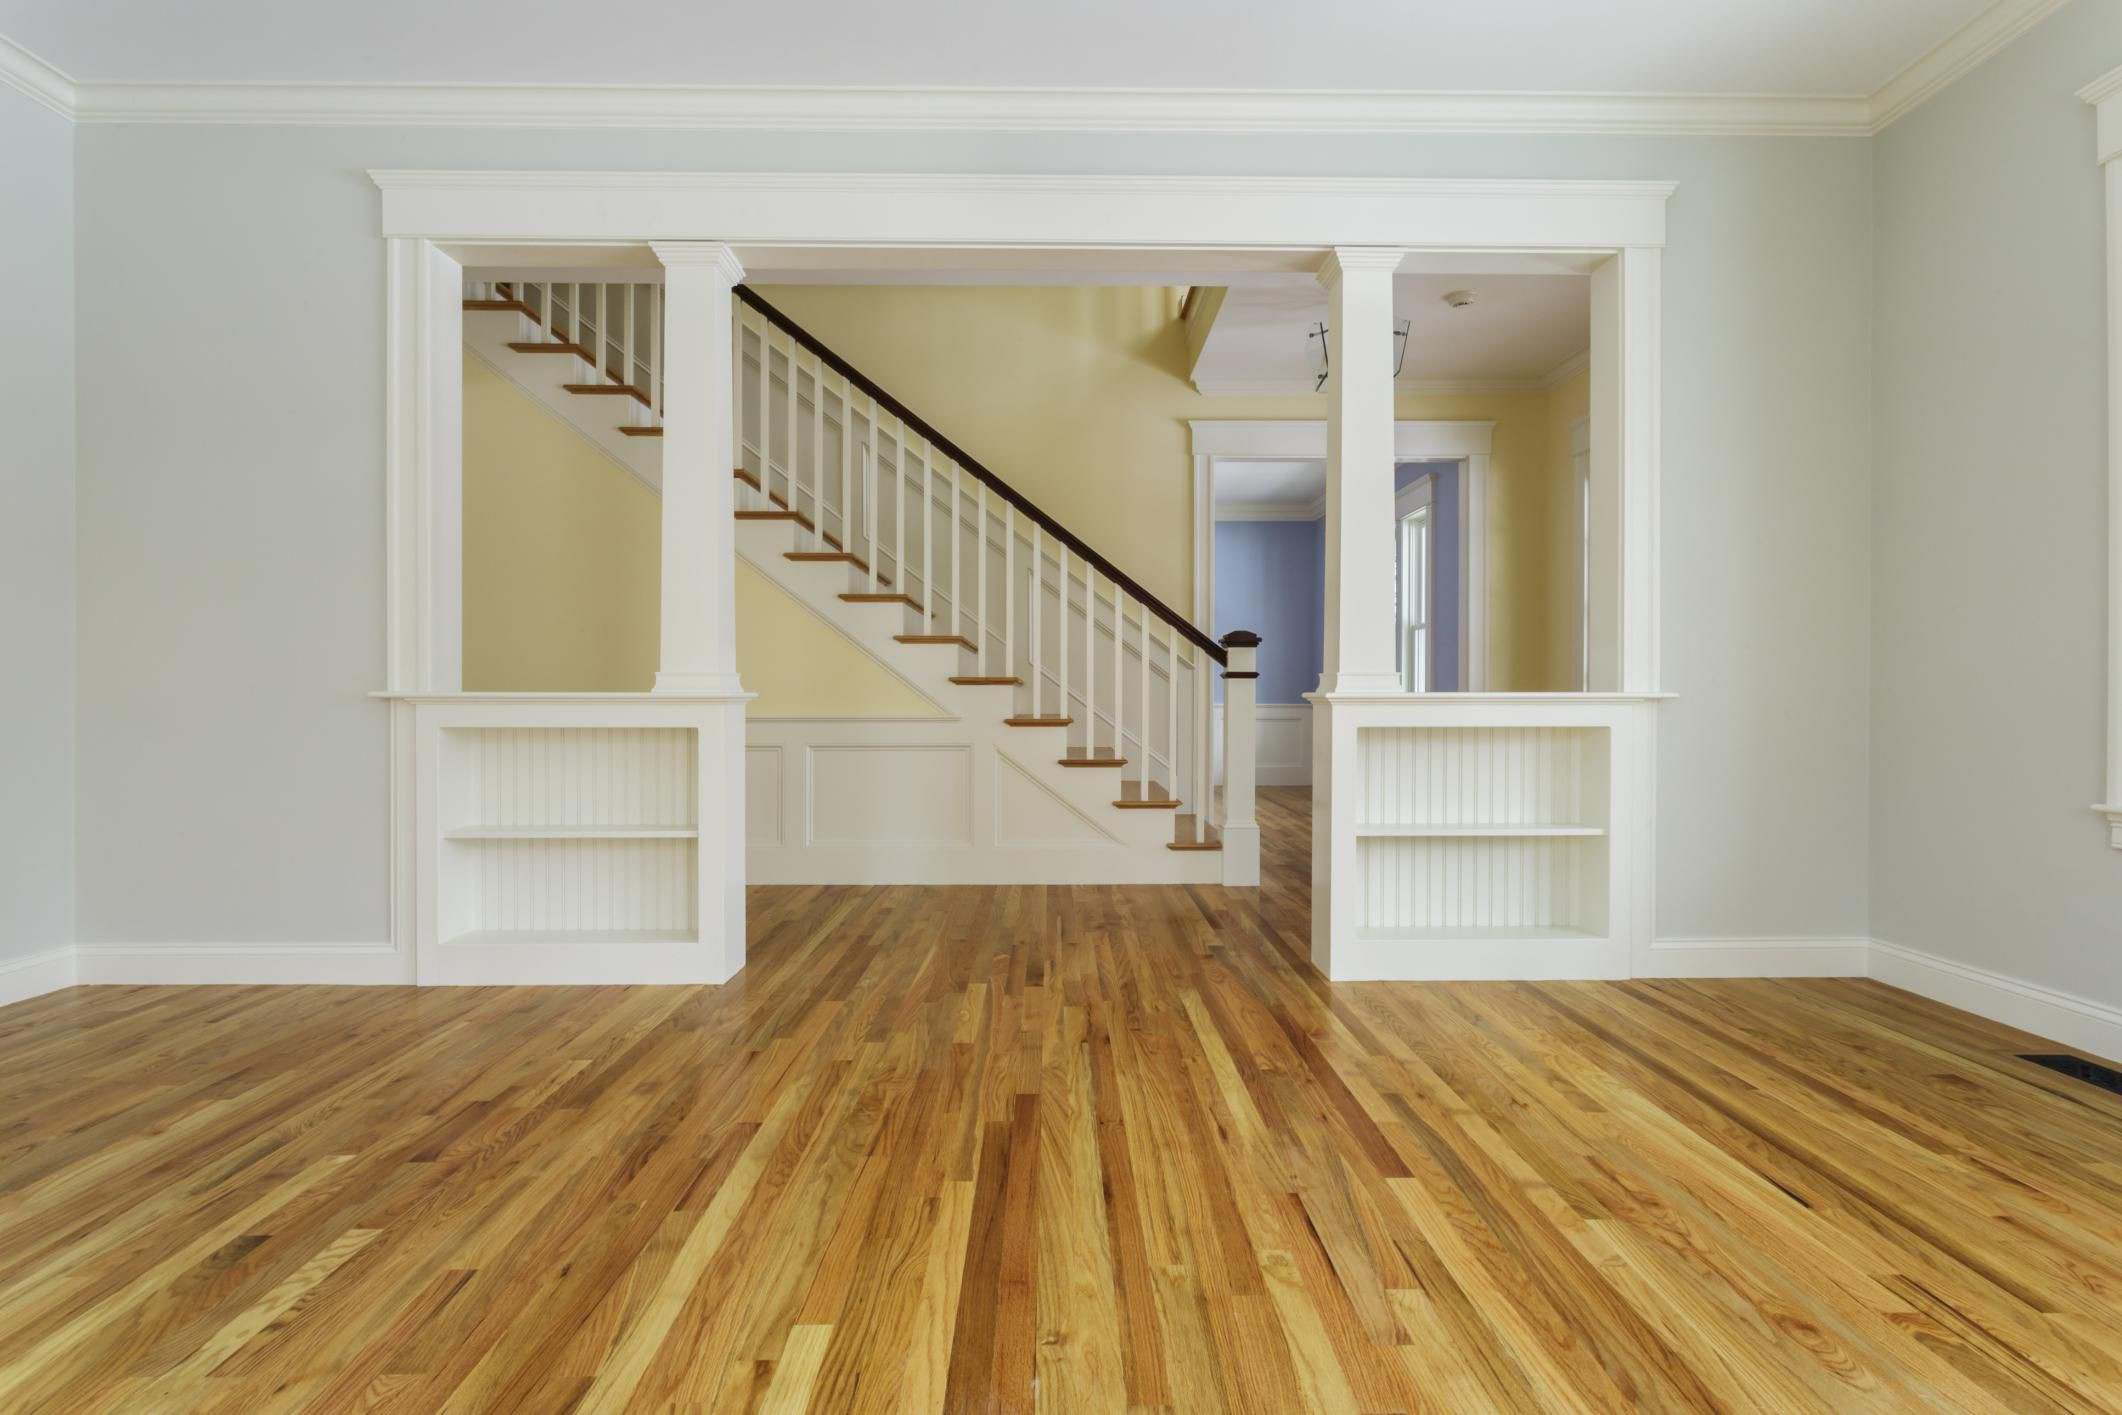 hardwood flooring labor rates of guide to solid hardwood floors regarding 168686571 56a49f213df78cf772834e24